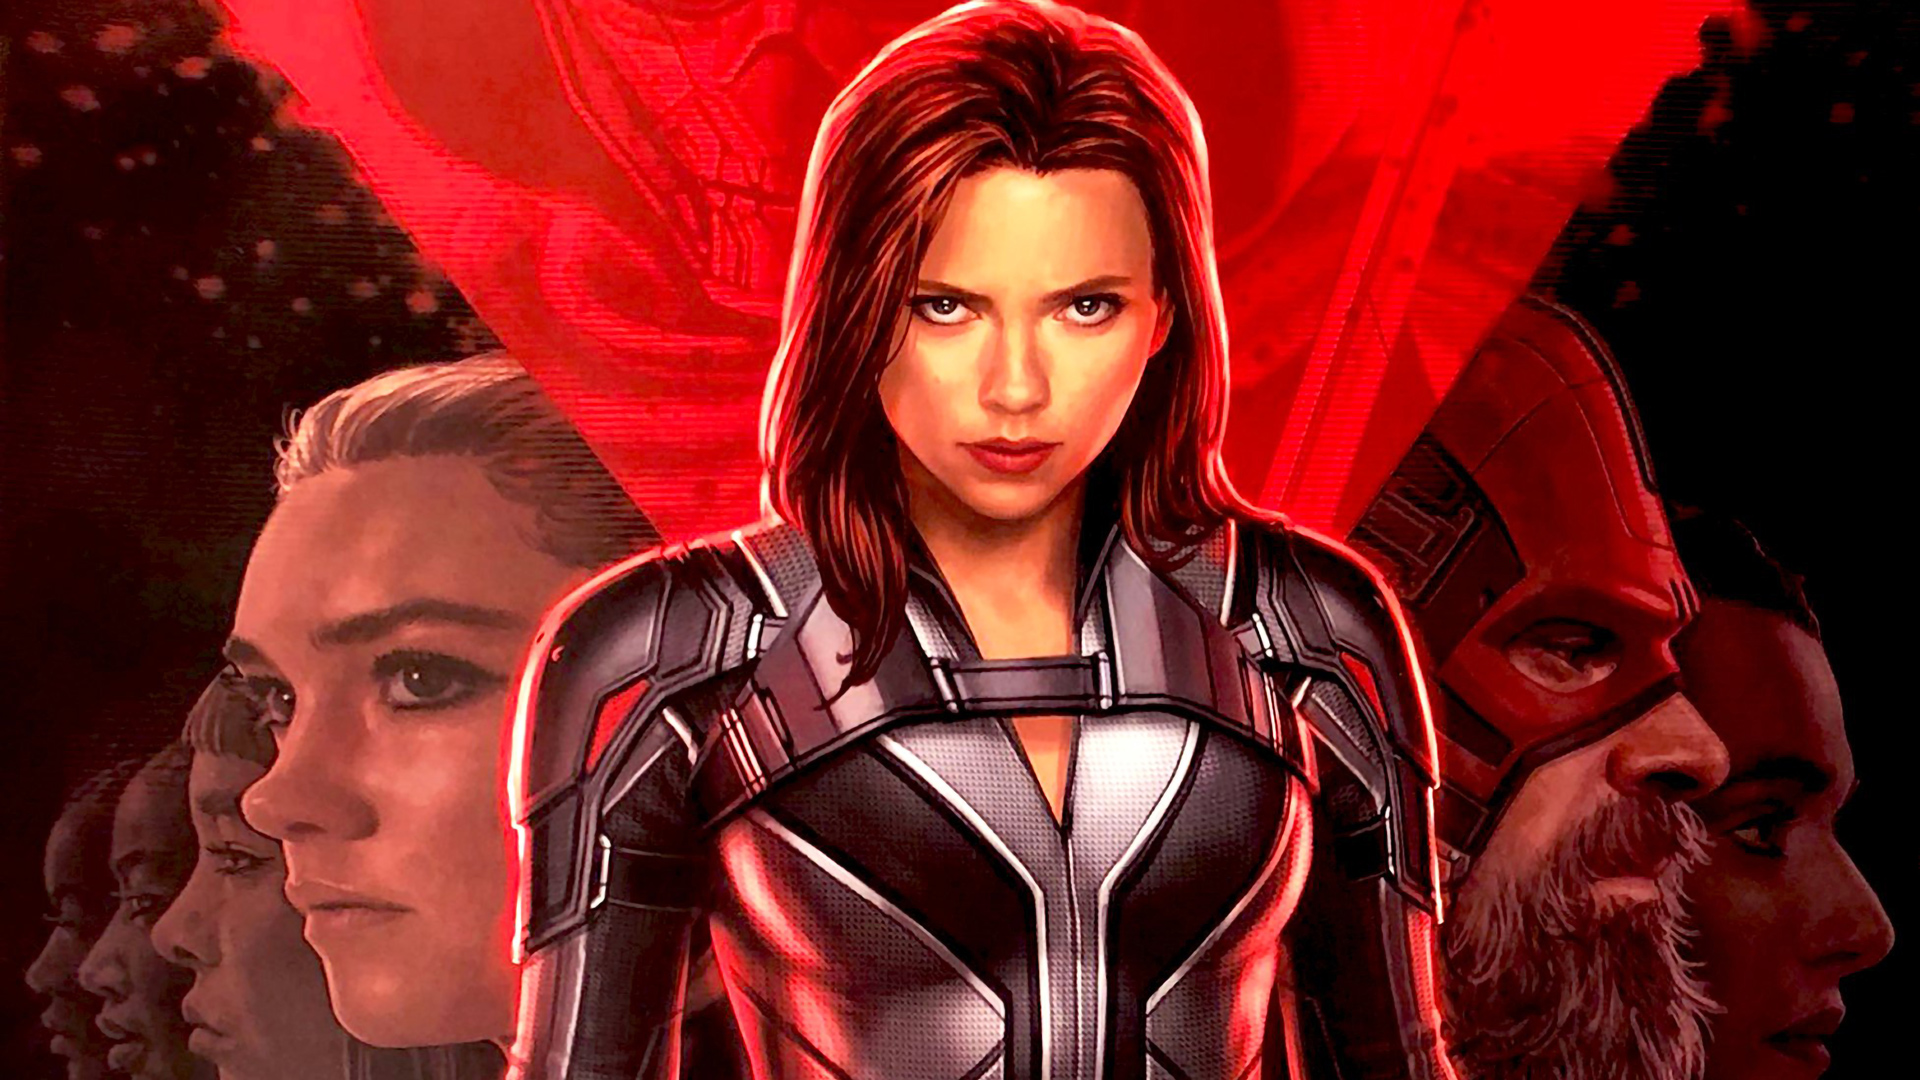 2020 Black Widow Hd Movies 4k Wallpapers Images